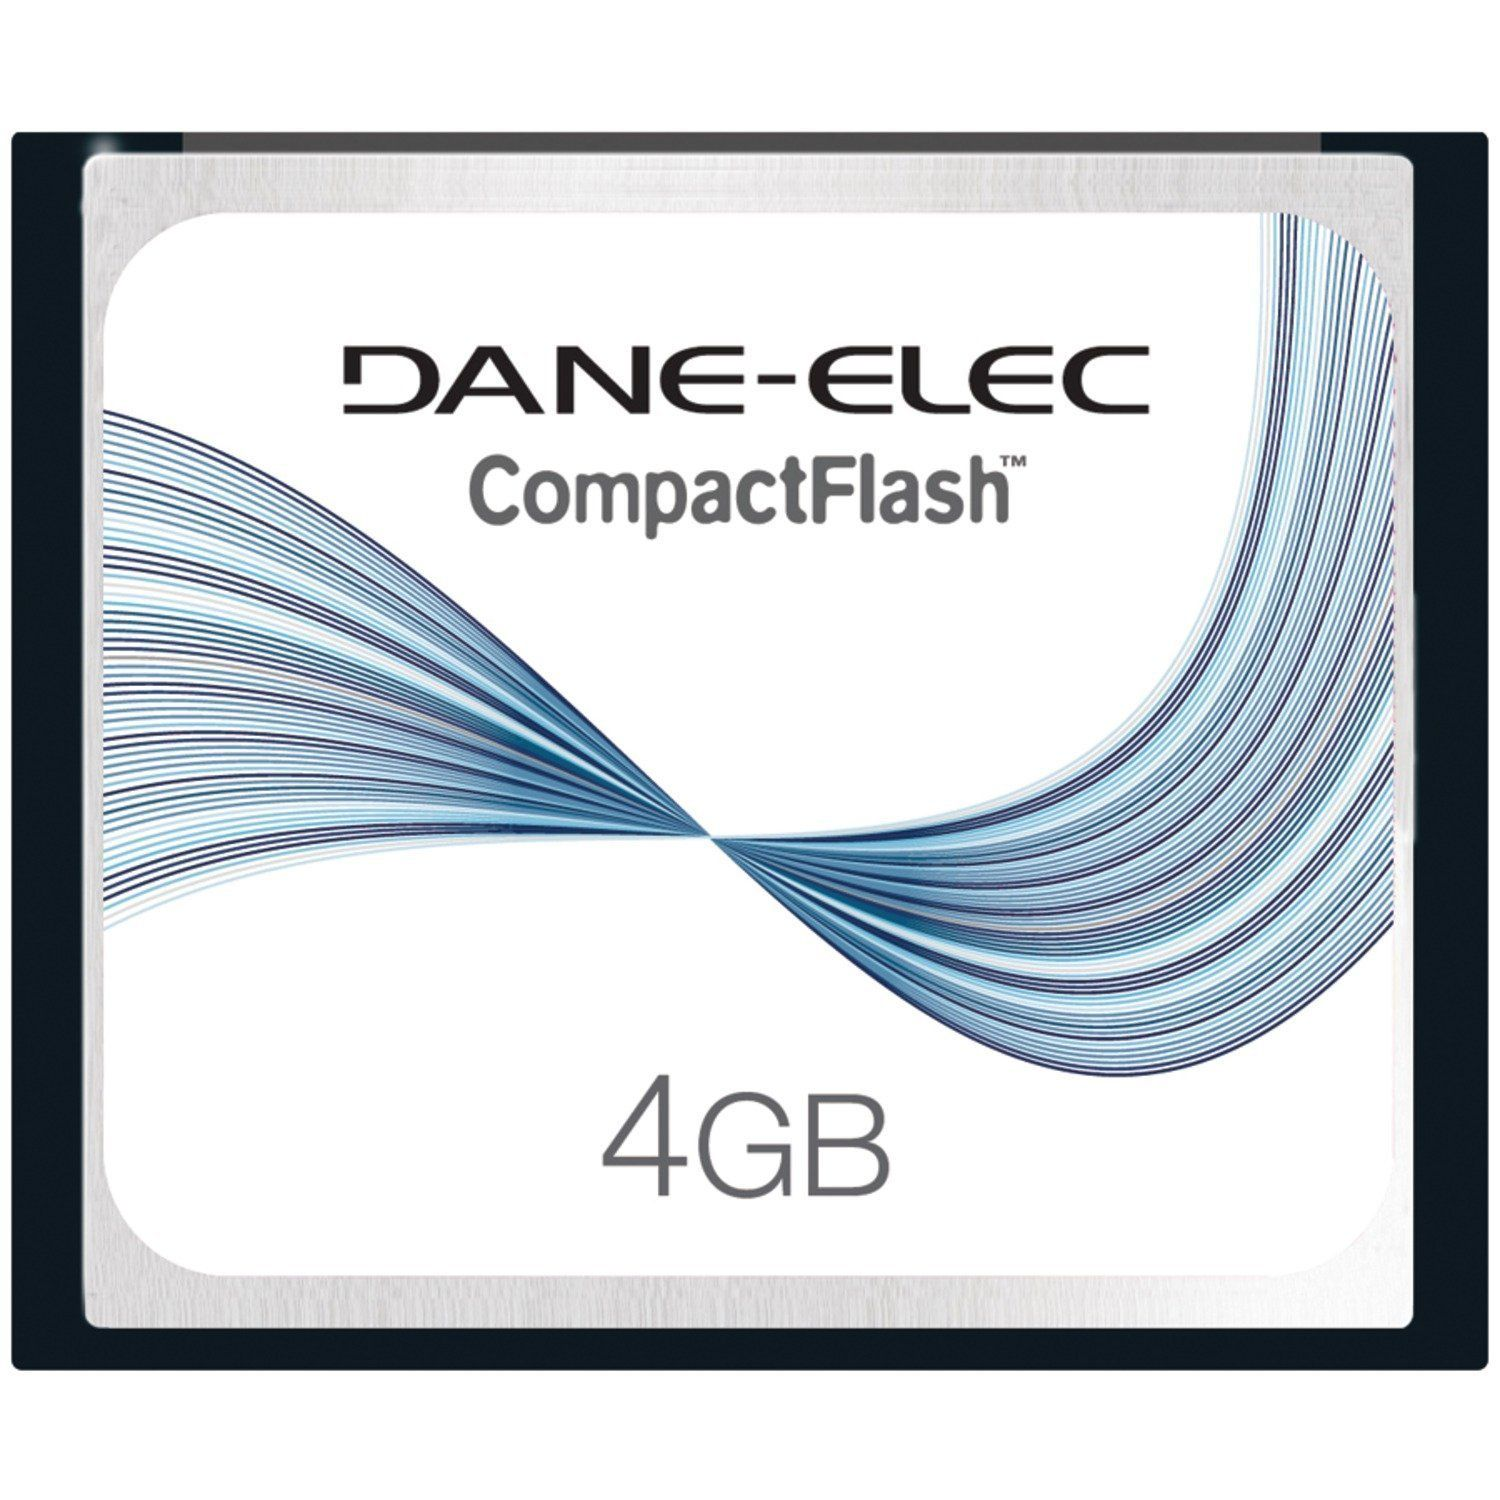 Dane-Elec Compact Flash 4GB Compact Flash Memory Card